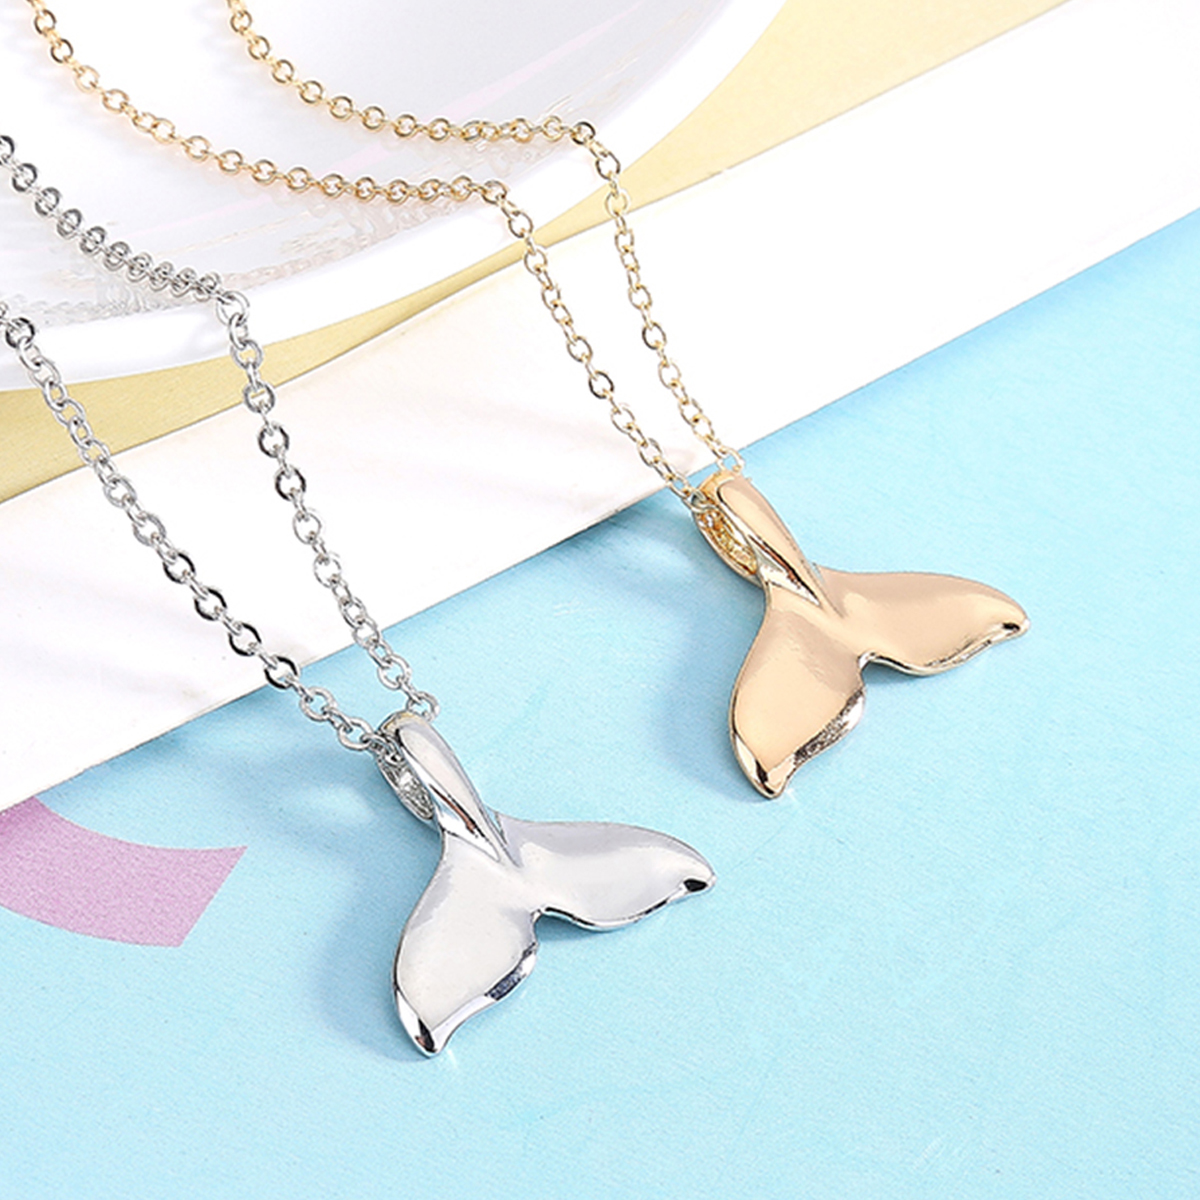 Shellhard punk long chain necklace charms whale fishtail dolphin tail pendant necklaces for women jewellery collar accessories